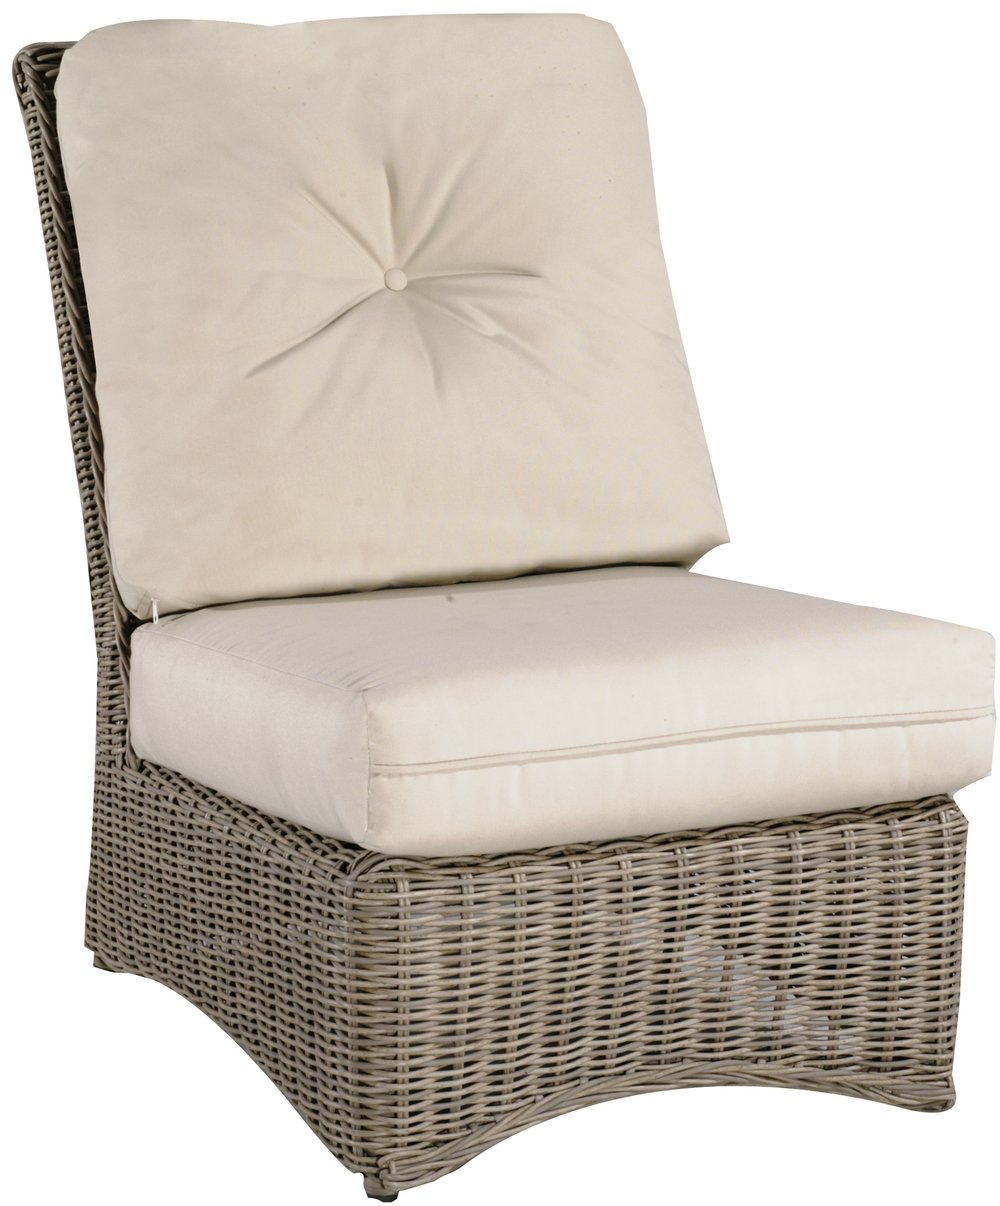 "971931A   West Hampton Armless Chair   26"" x 36.2"" x 36.4"""